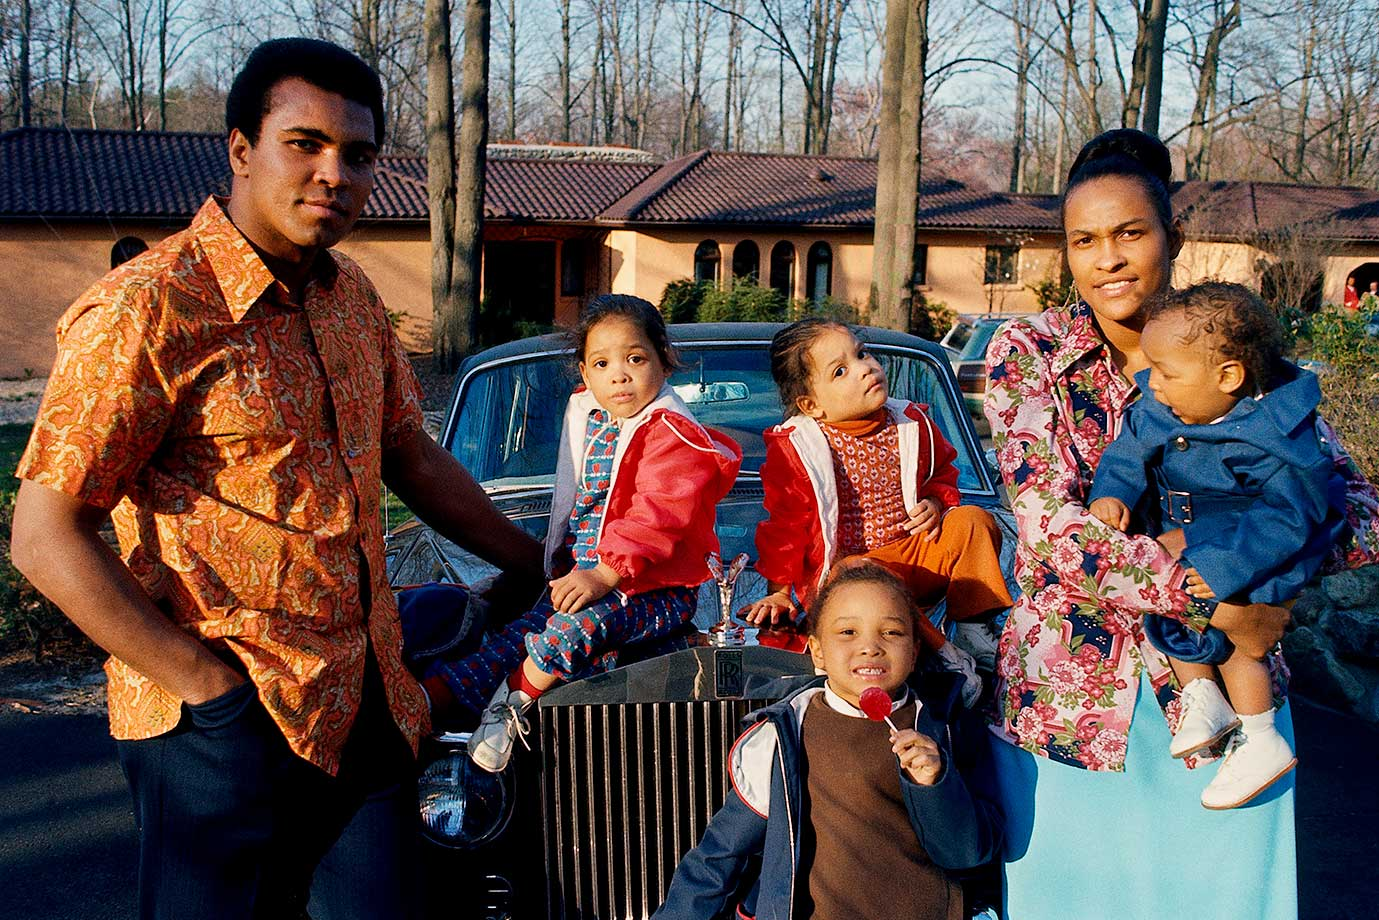 The Ali family standing outside their New Jersey home. To the right of Muhammad Ali are his twin daughters, Jamilllah and Rasheda, daughter Maryum and his wife, Khalilah, holding their son Ibn Muhammad Ali Jr.